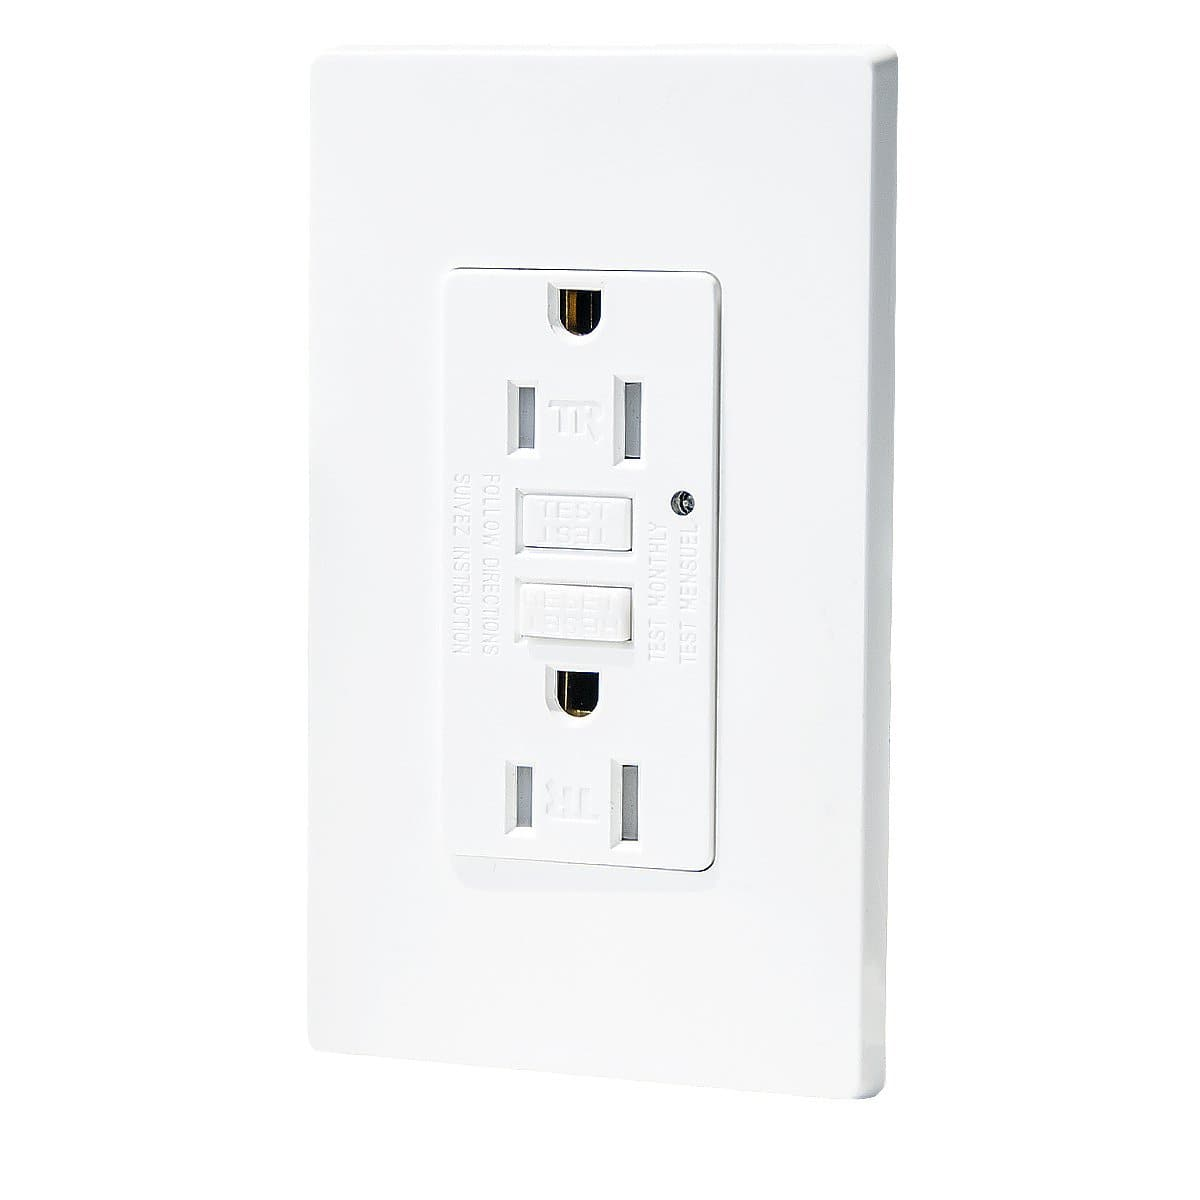 15 Amp GFCI Outlet, 125 Volt, Tamper-Resistant, Indicator with LED Light, Two Wall Plates Included, White - $7.19